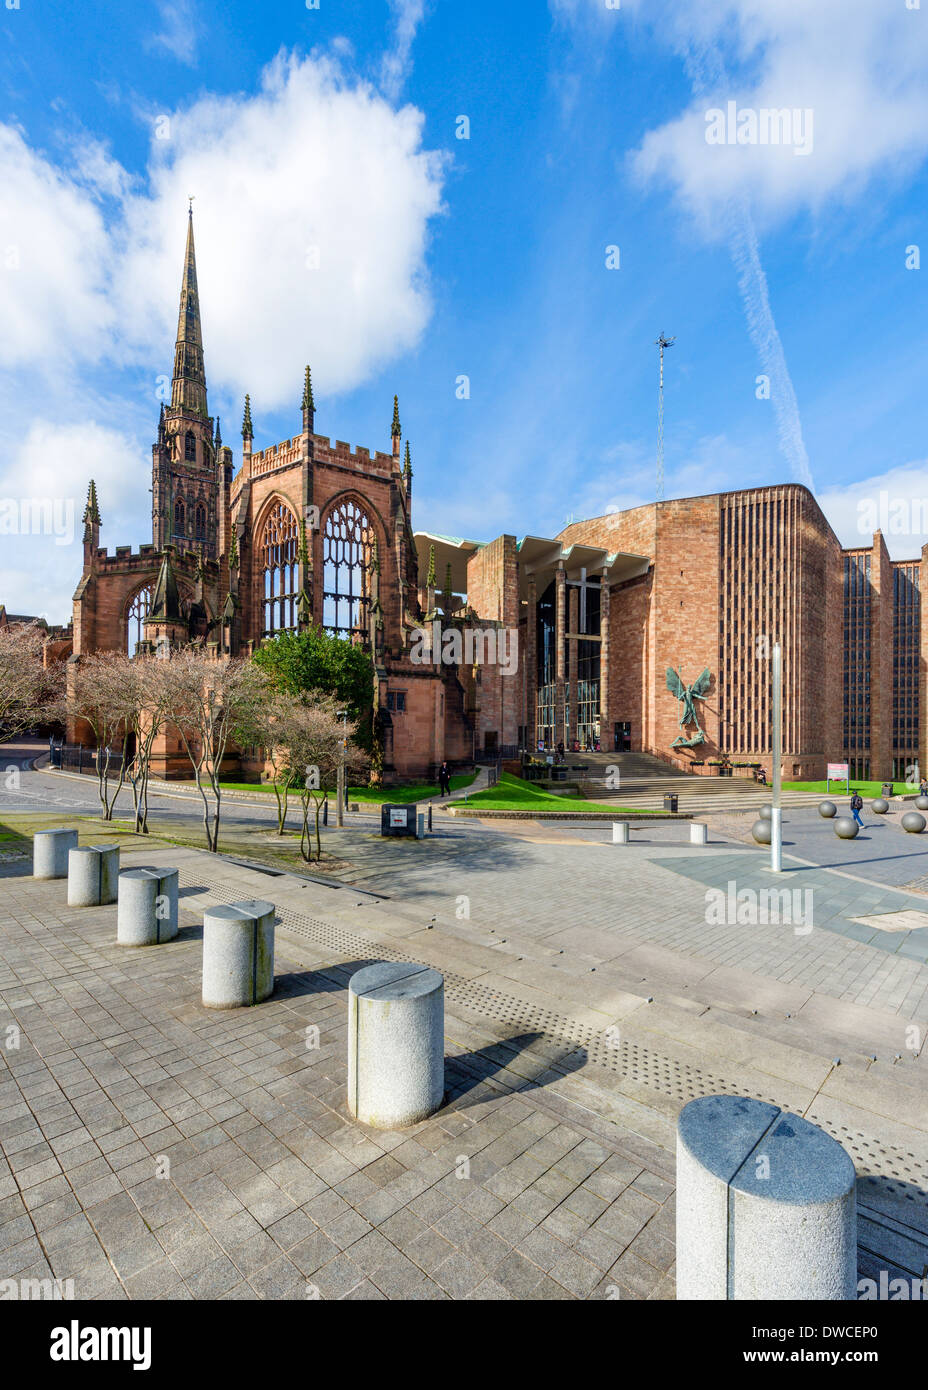 Coventry Cathedral (St Michael's) with bombed out ruins of the old cathedral to the left, Coventry, West Midlands, England, UK - Stock Image